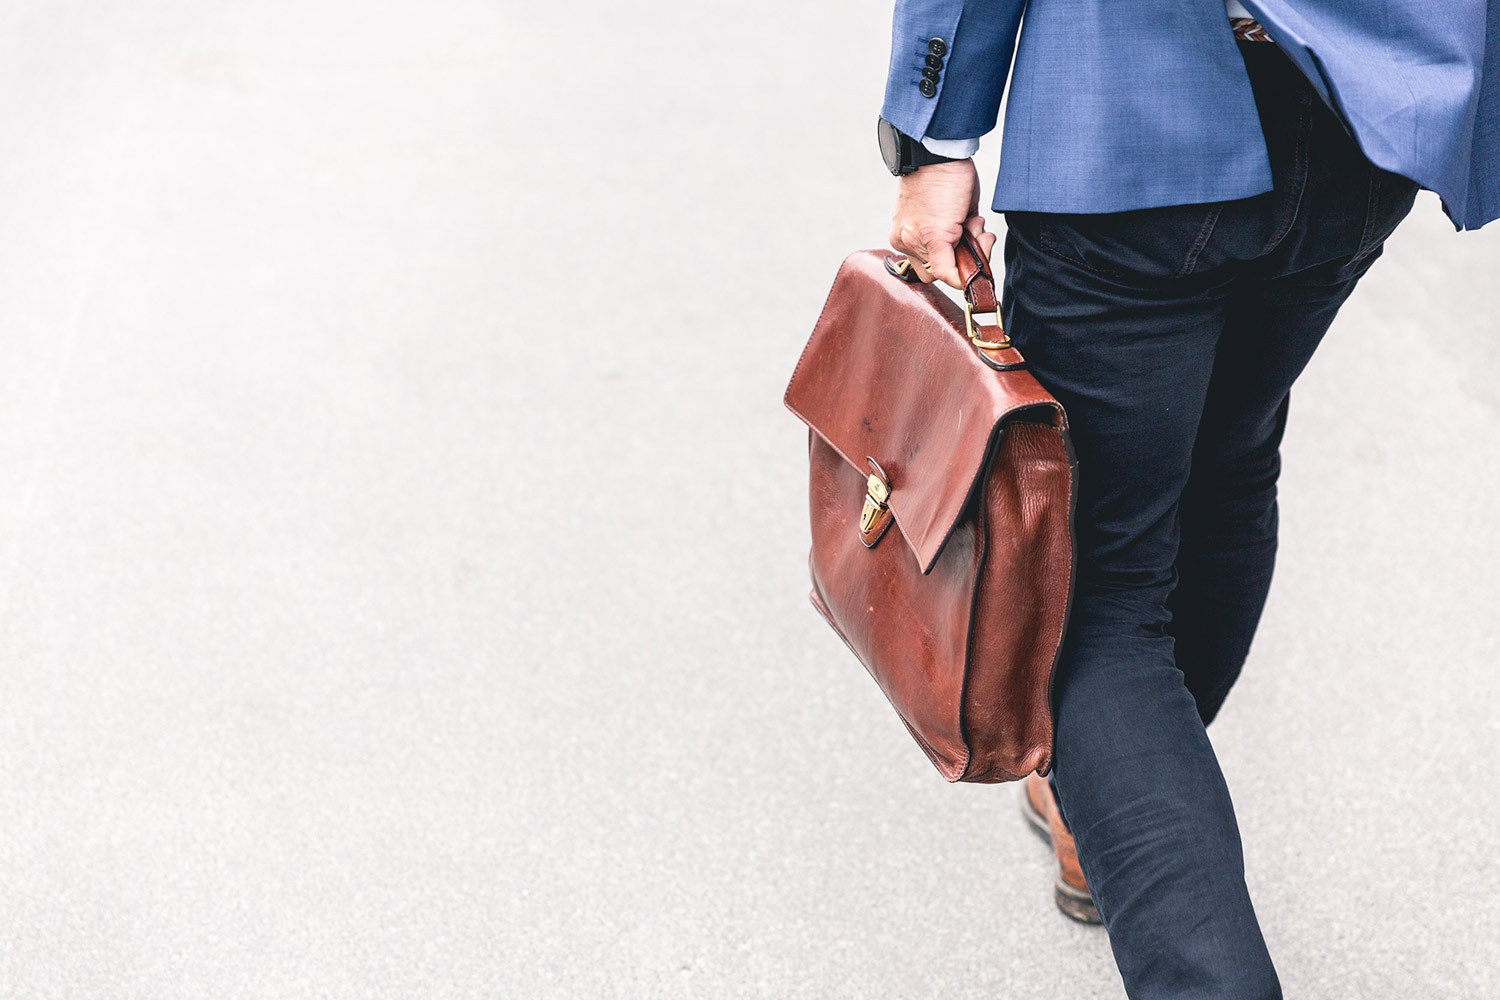 A man in business clothes carries a briefcase. Working when you're in recovery